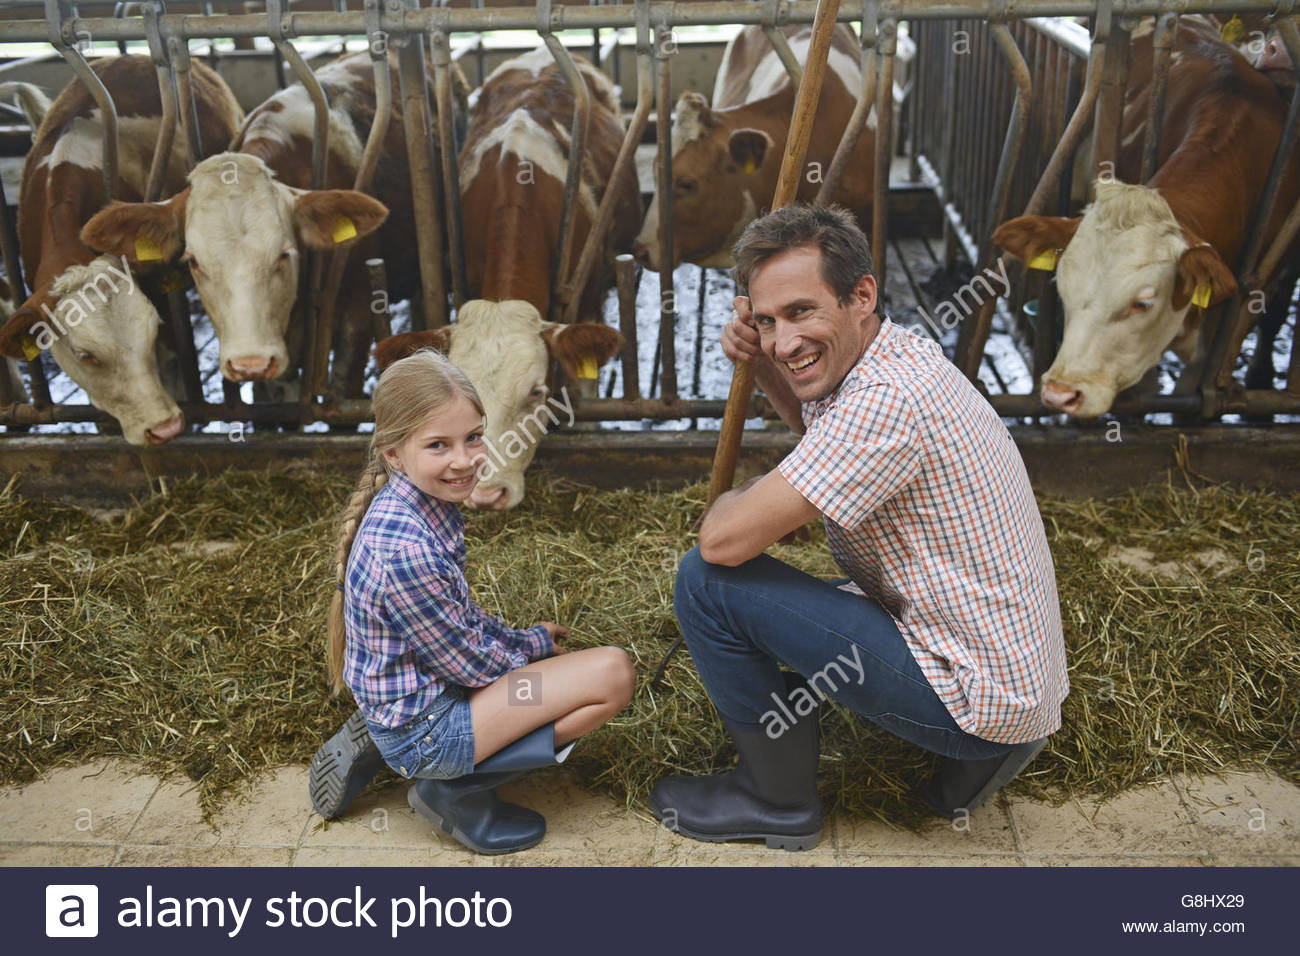 Father and girl crouching by cattle in barn - Stock Image